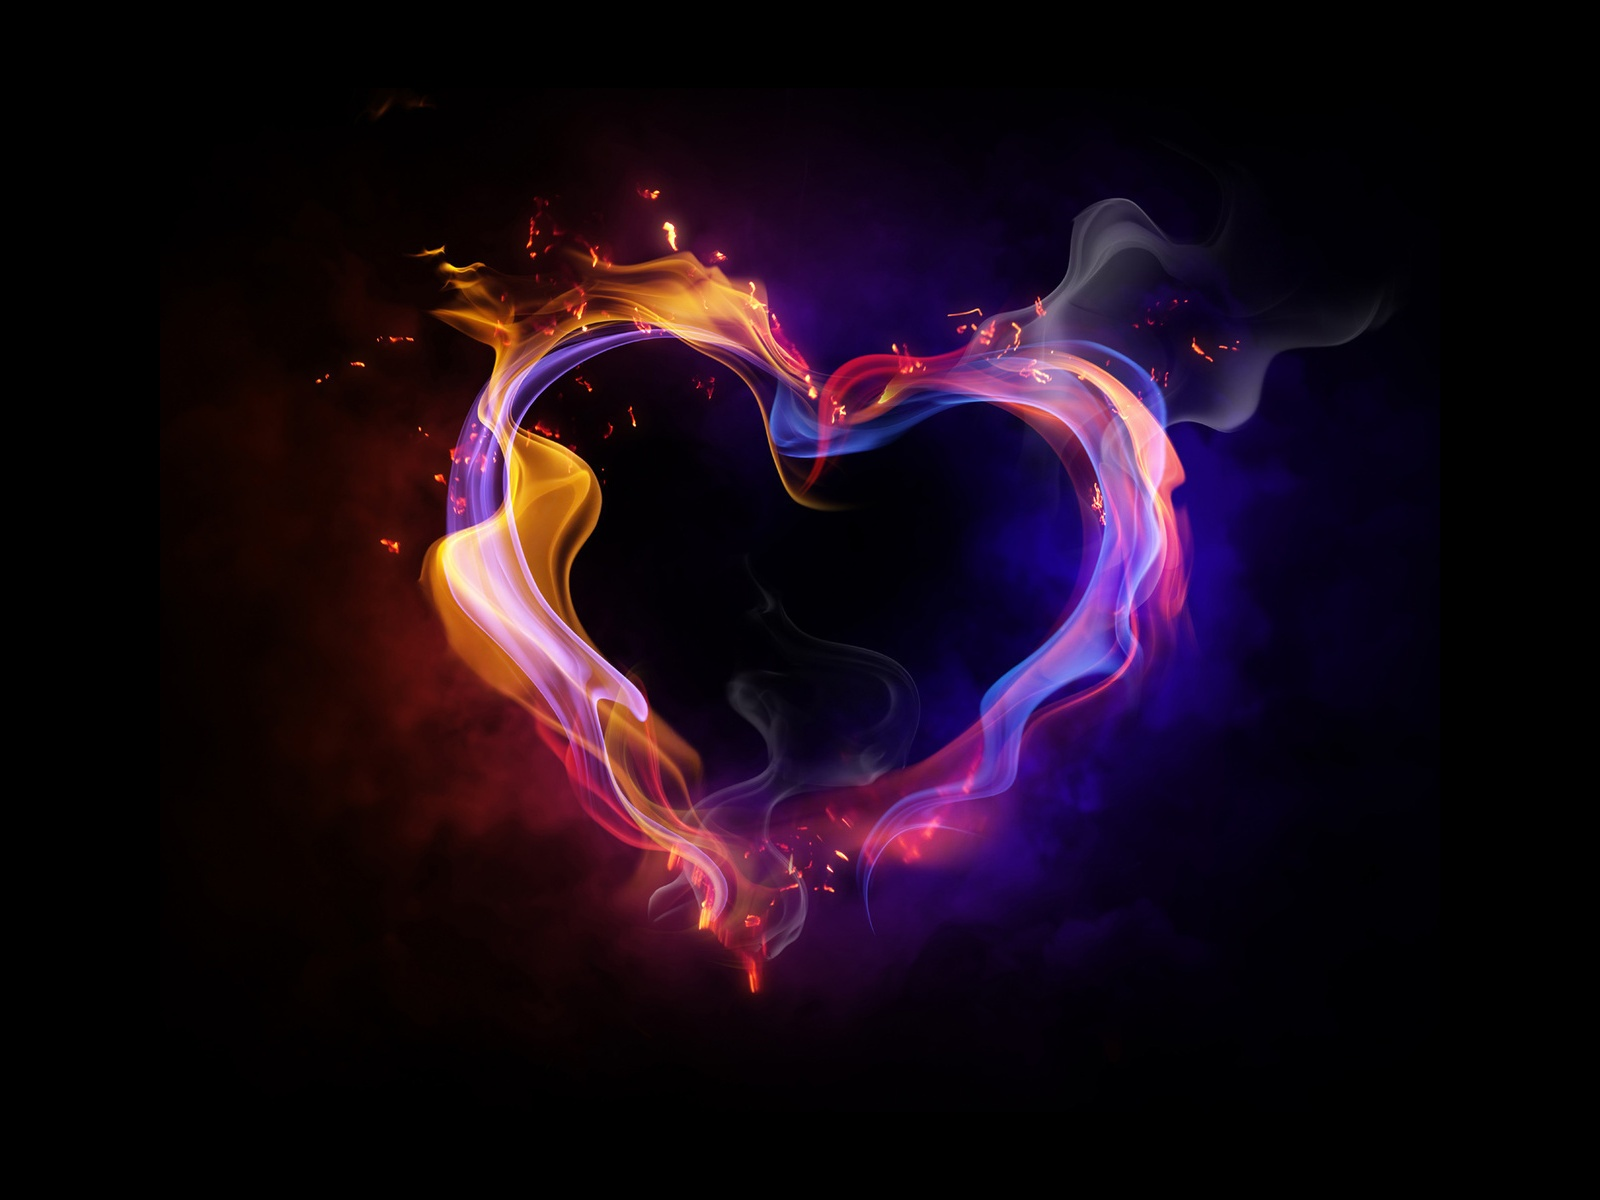 Love hd wallpaper, love wallpaper hd | Amazing Wallpapers